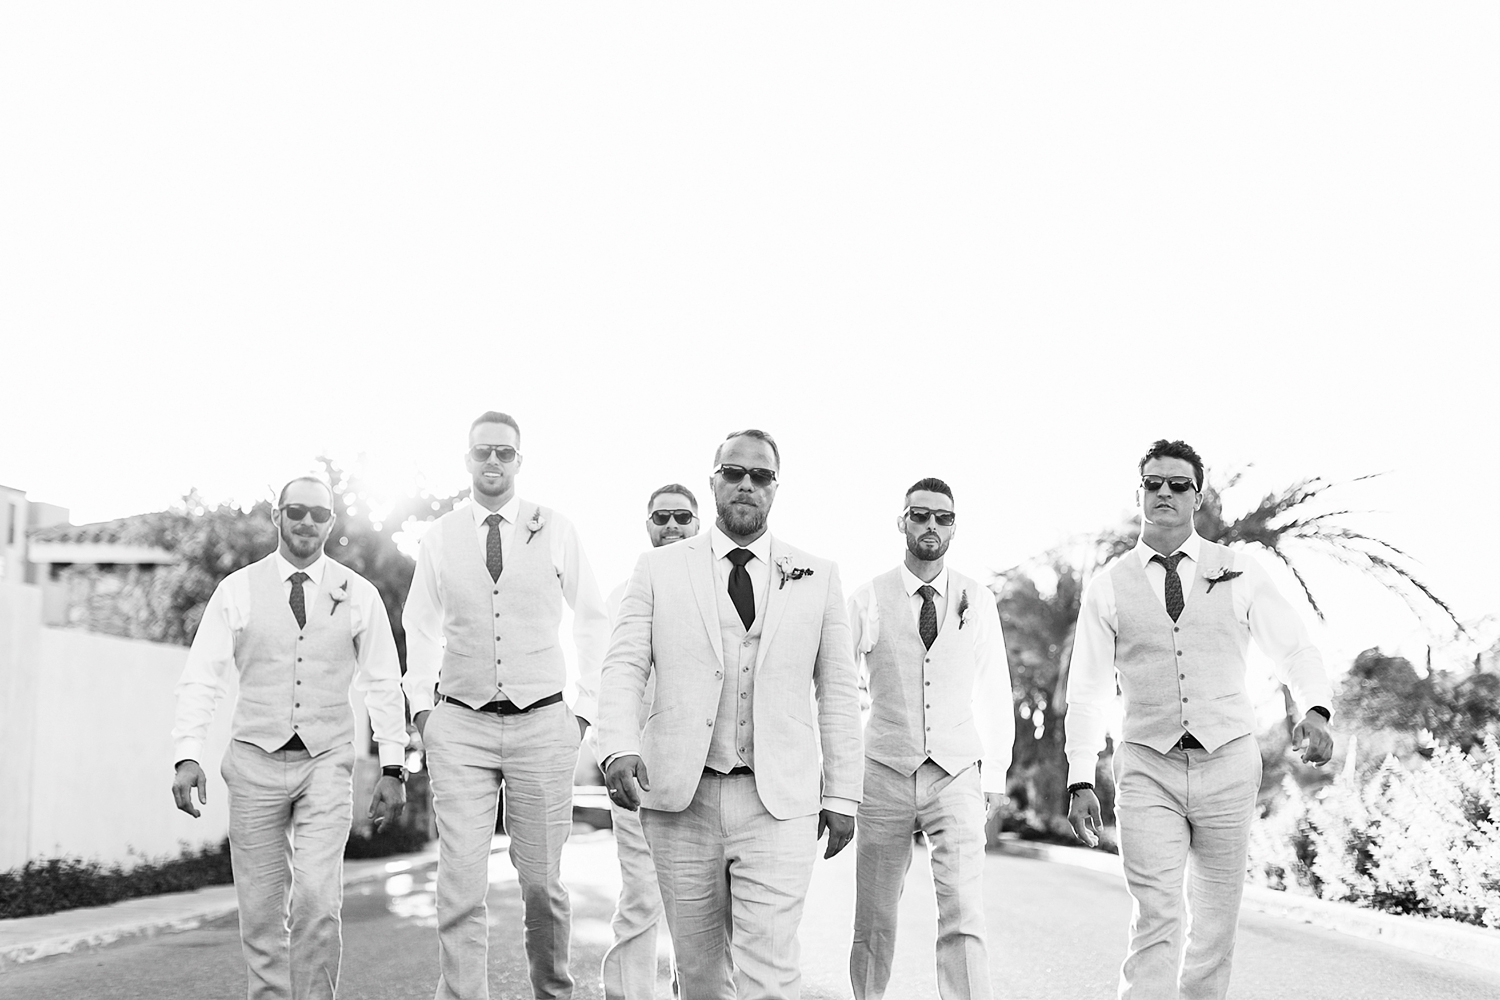 cabo-san-lucas-wedding-travelling-destination-wedding-photographer-toronto-wedding-photographers-3b-photography-hipster-trendy-documentary-style-mexico-wedding-bridal-party-portraits-groomsmen-badass-bridal-party-photo-inspiration-candid-bw.jpg